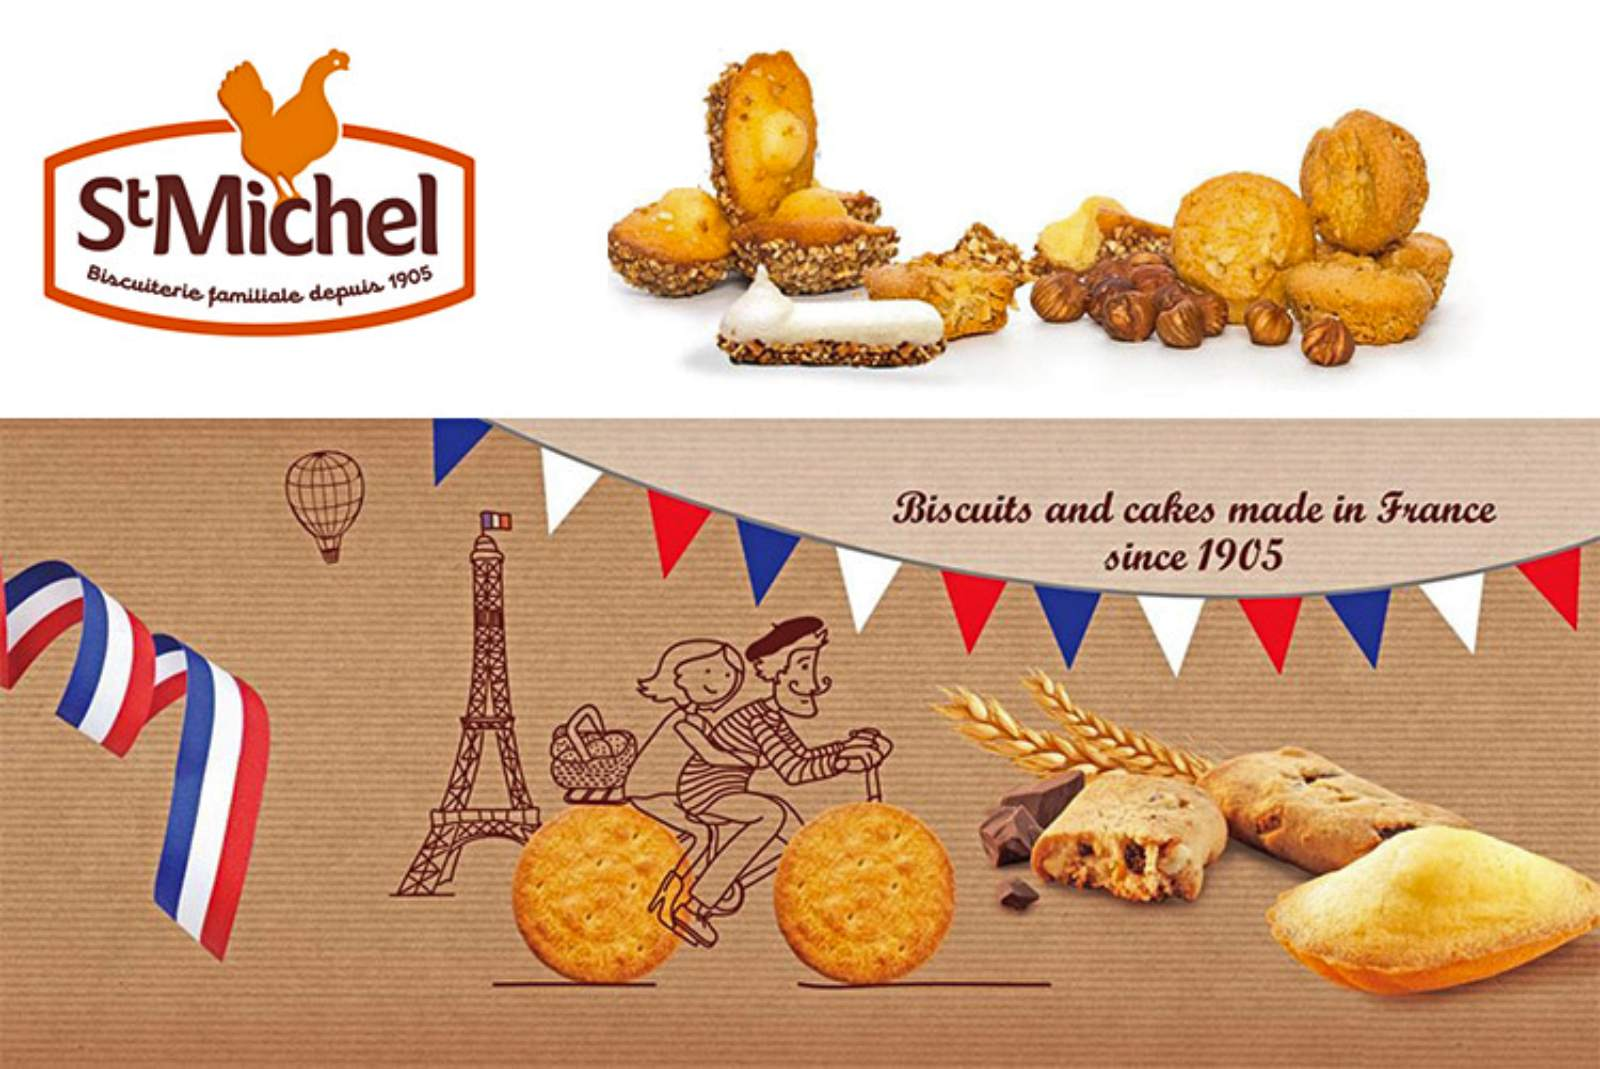 Miller Distributors Ltd appointed Local Distributor for St Michel Biscuit